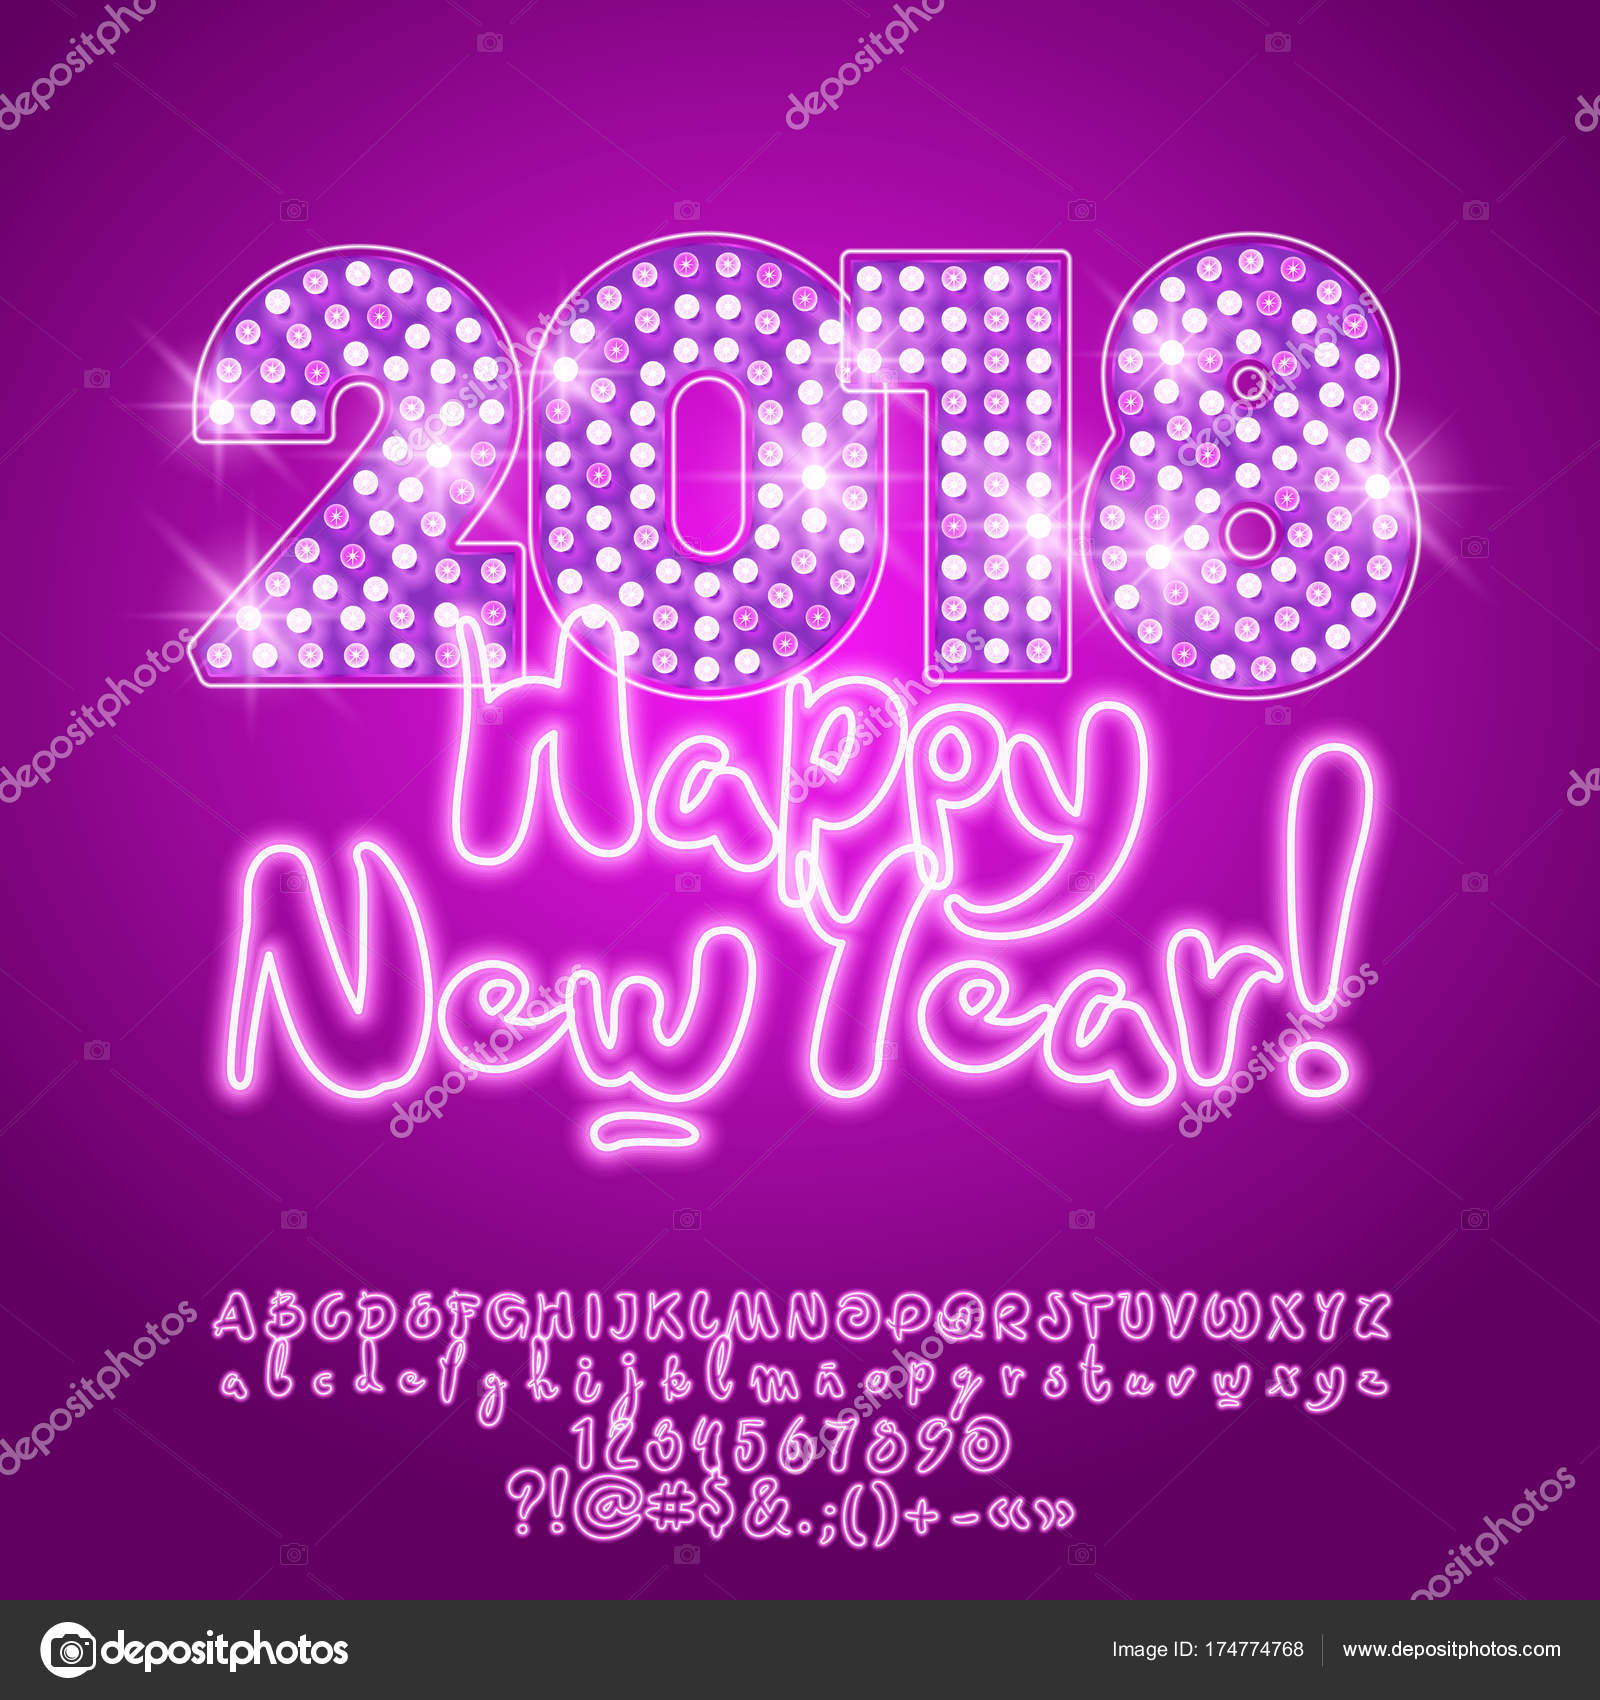 Vector light disco happy new year 2018 greeting card neon stock vector light up disco happy new year 2018 greeting card with neon alphabet set of letters symbols and numbers vector by dgbomb m4hsunfo